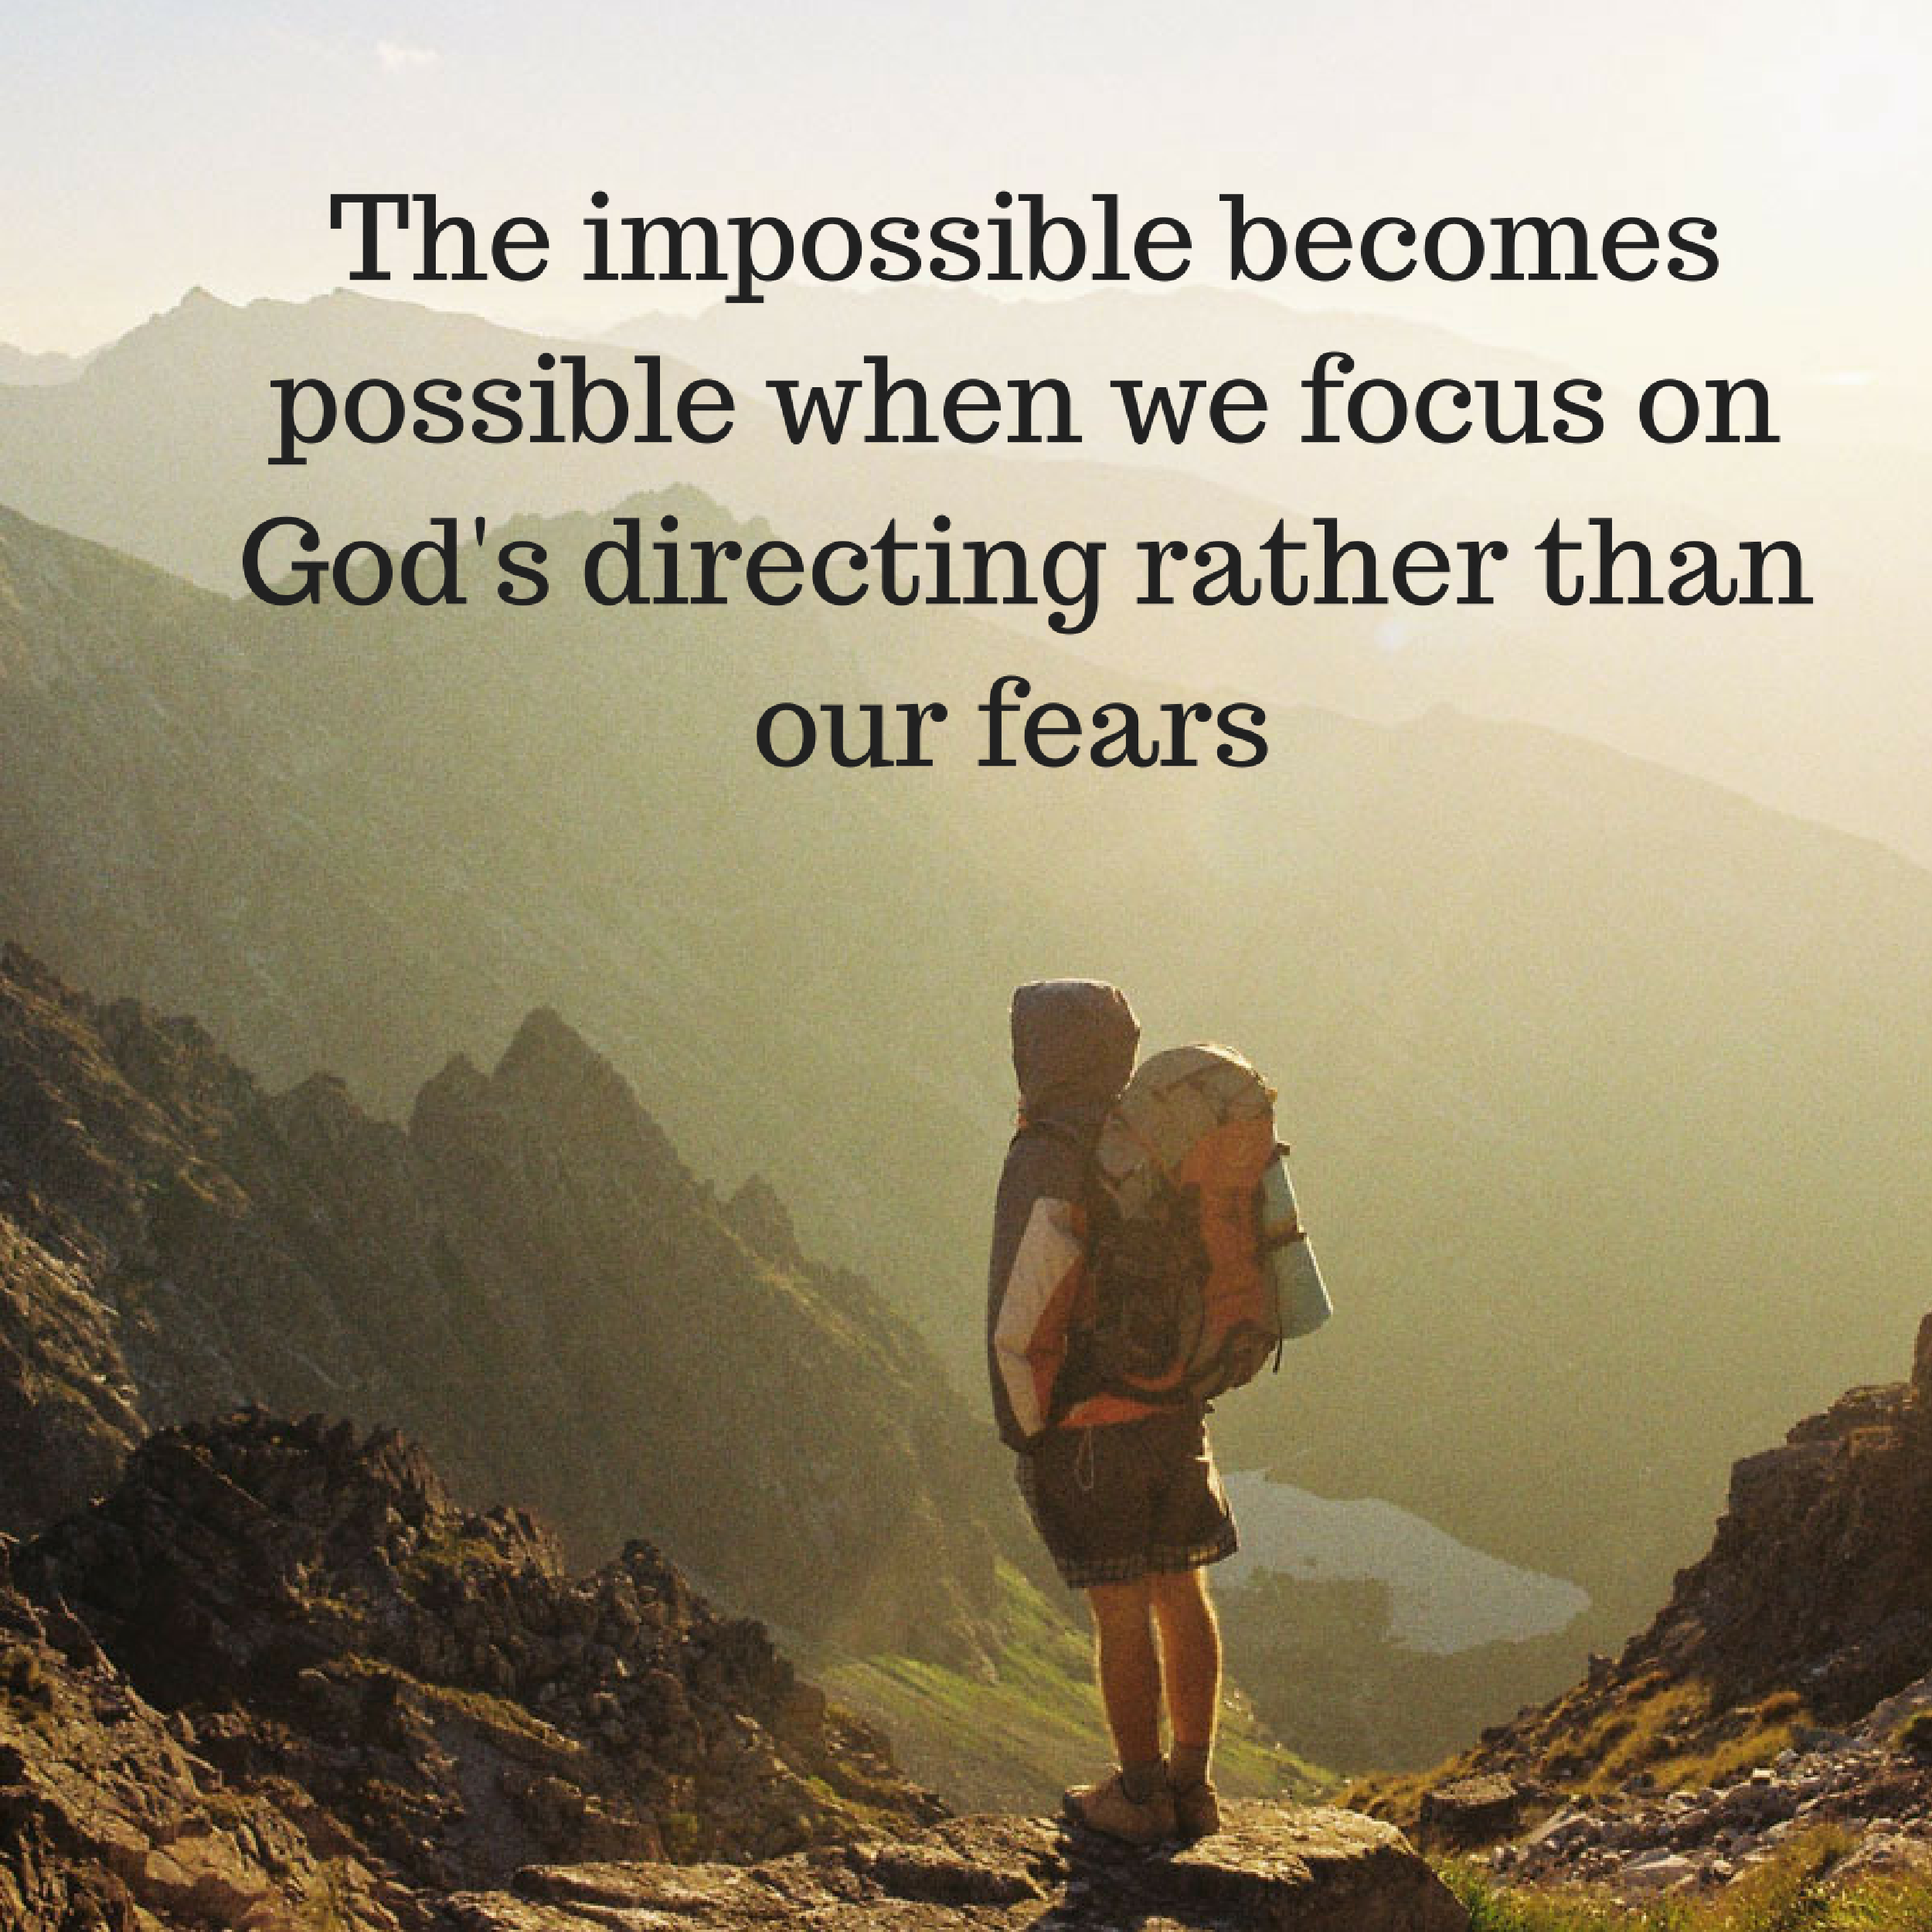 the-impossible-becomes-possible-when-we-focus-on-gods-directing-rather-than-our-fears